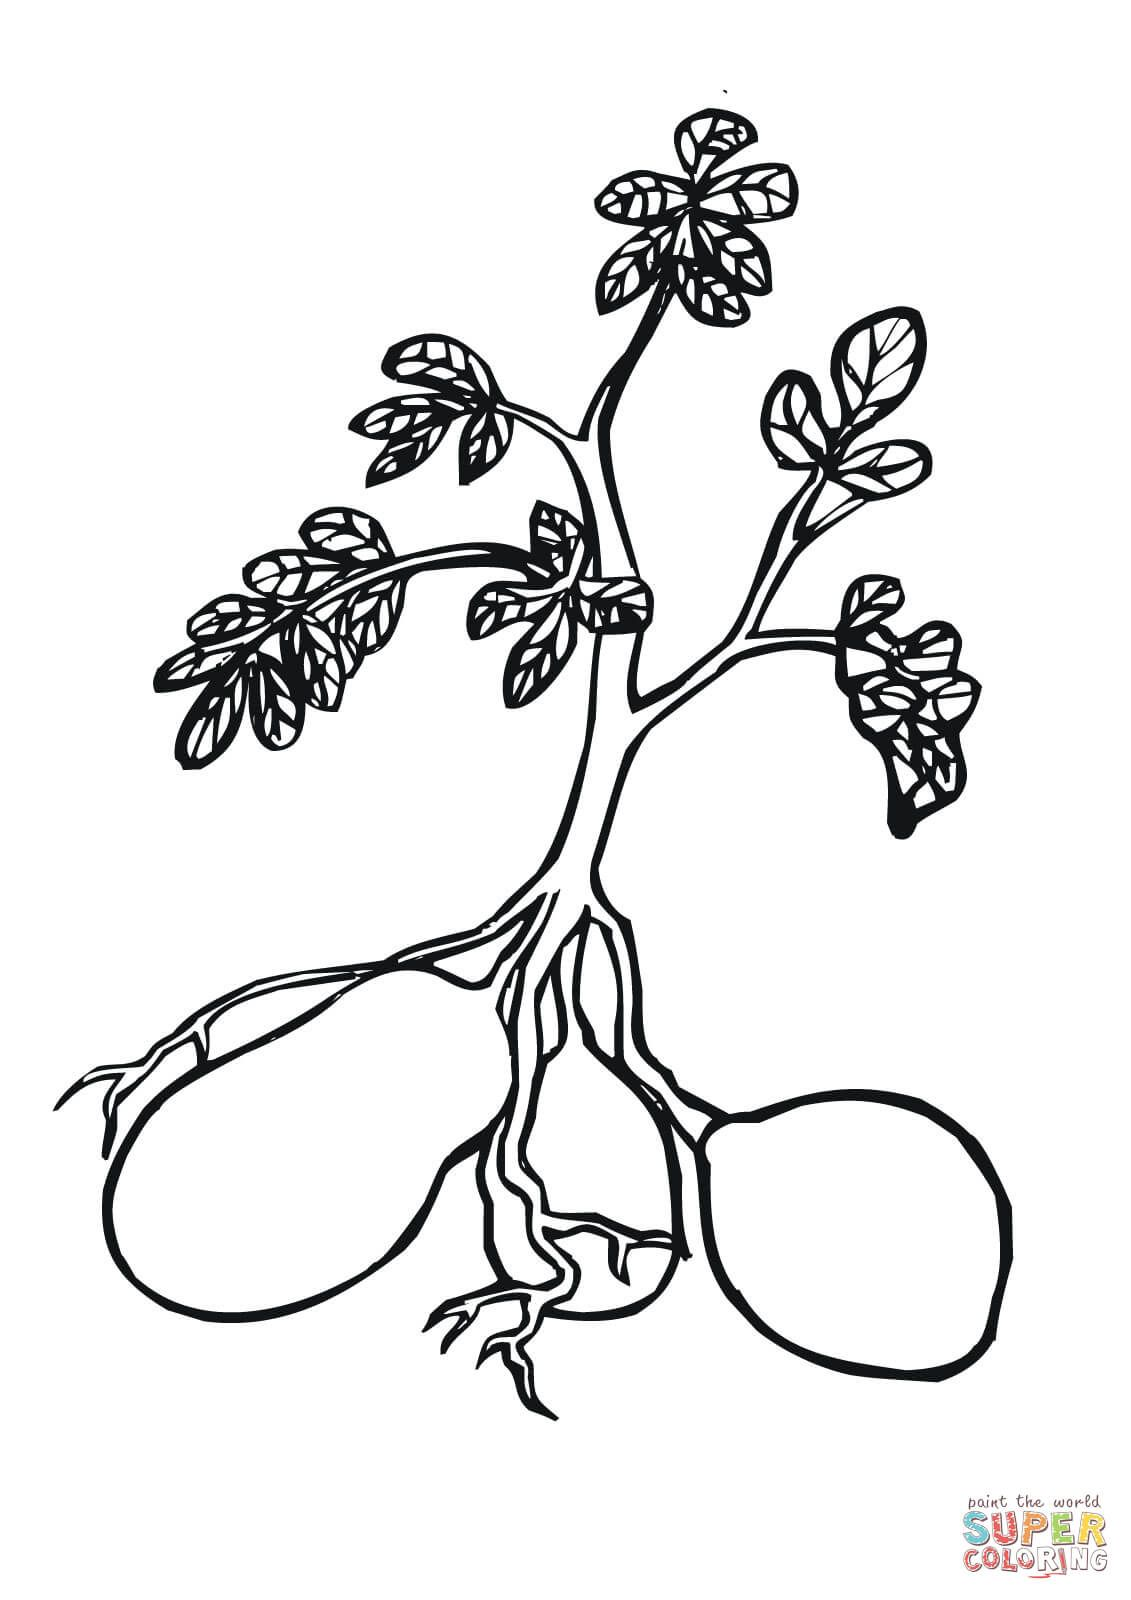 - Potato Plant Coloring Page Free Printable Coloring Pages (With